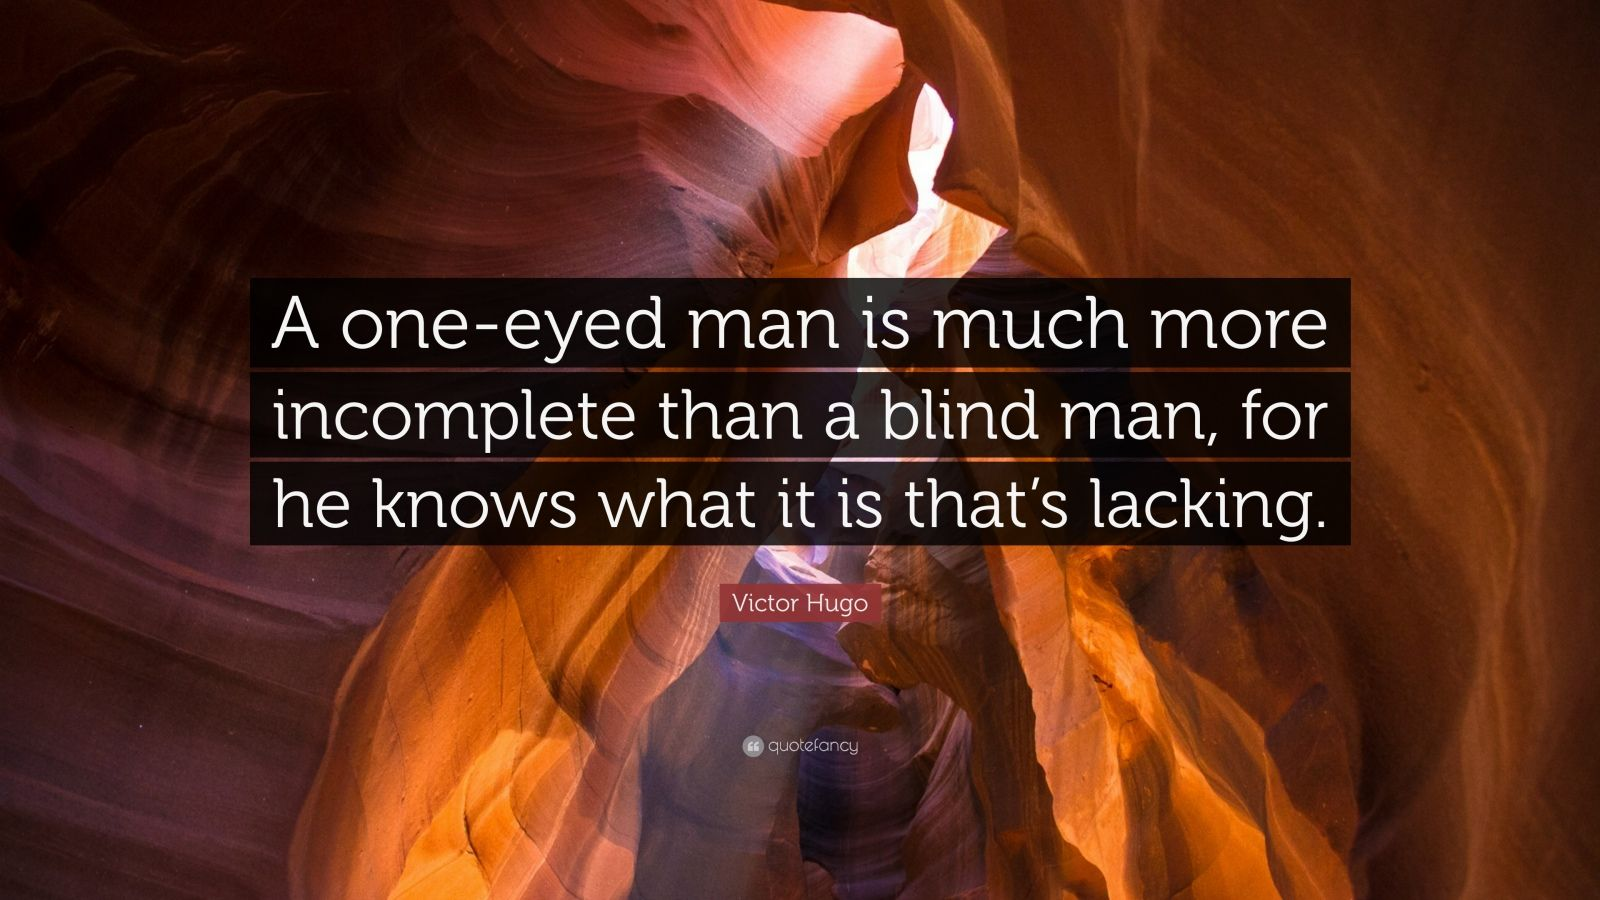 """Victor Hugo Quote: """"A one-eyed man is much more incomplete than a blind man, for he knows what it is that's lacking."""""""